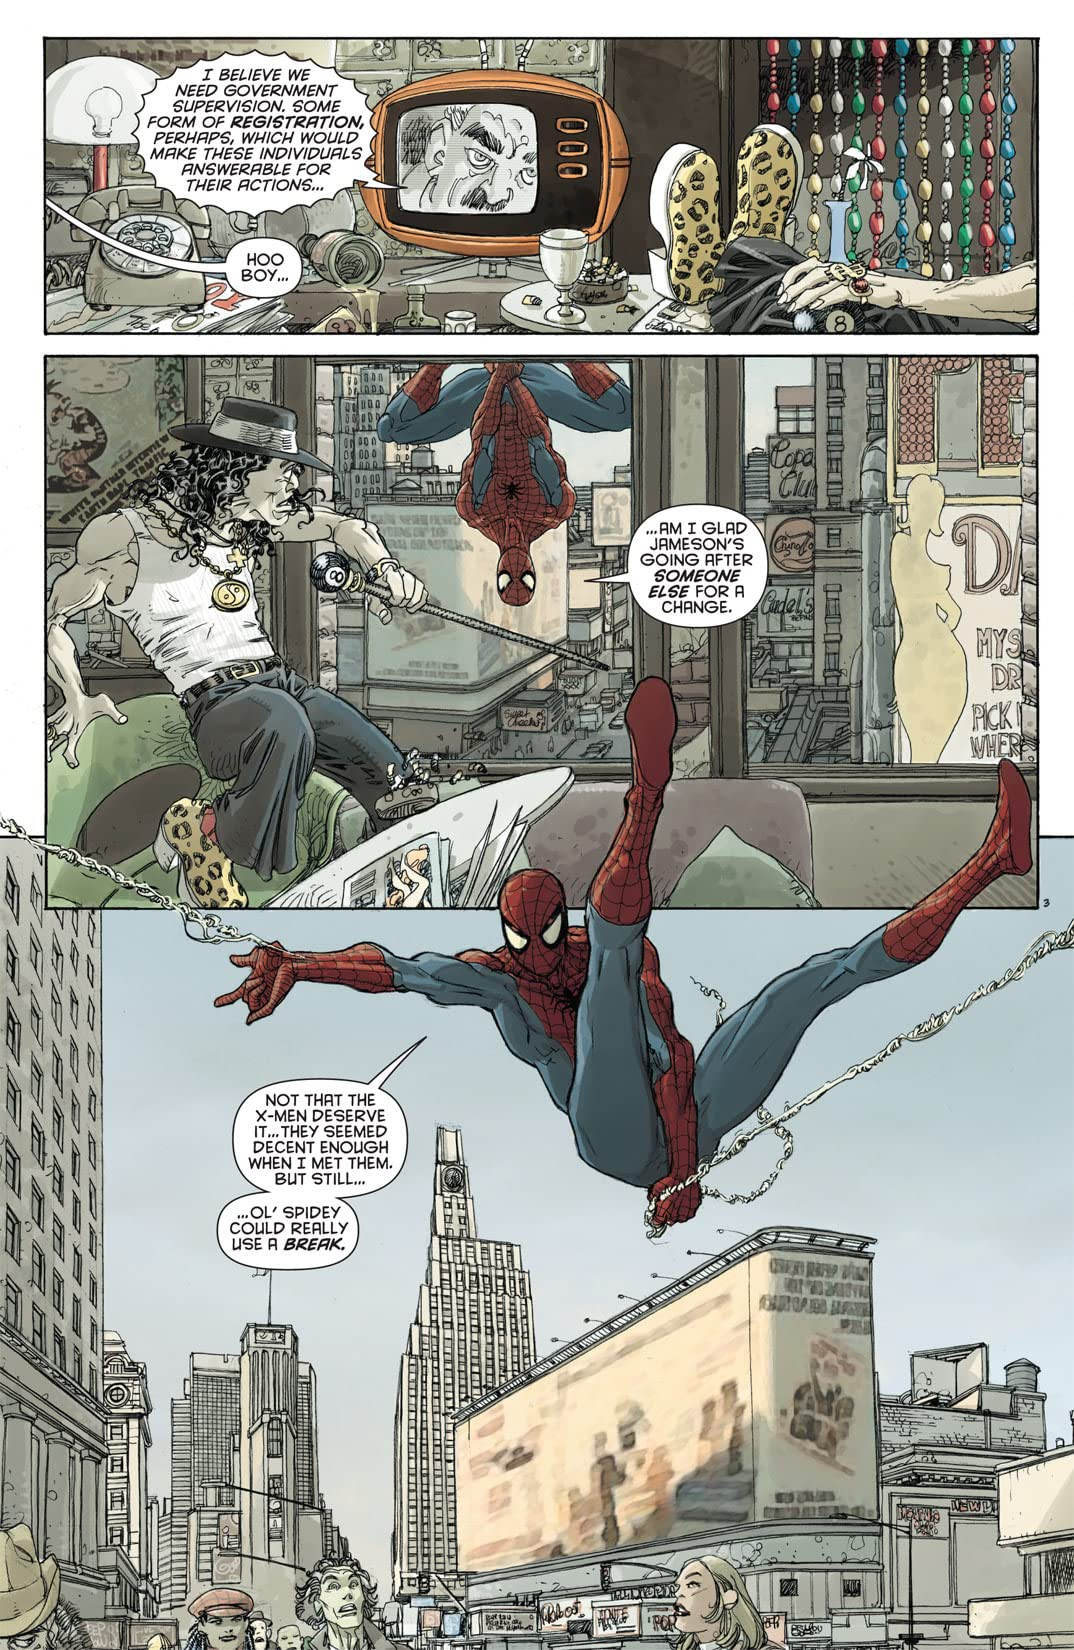 Spider-Man and the X-Men Digital Spectacular #1